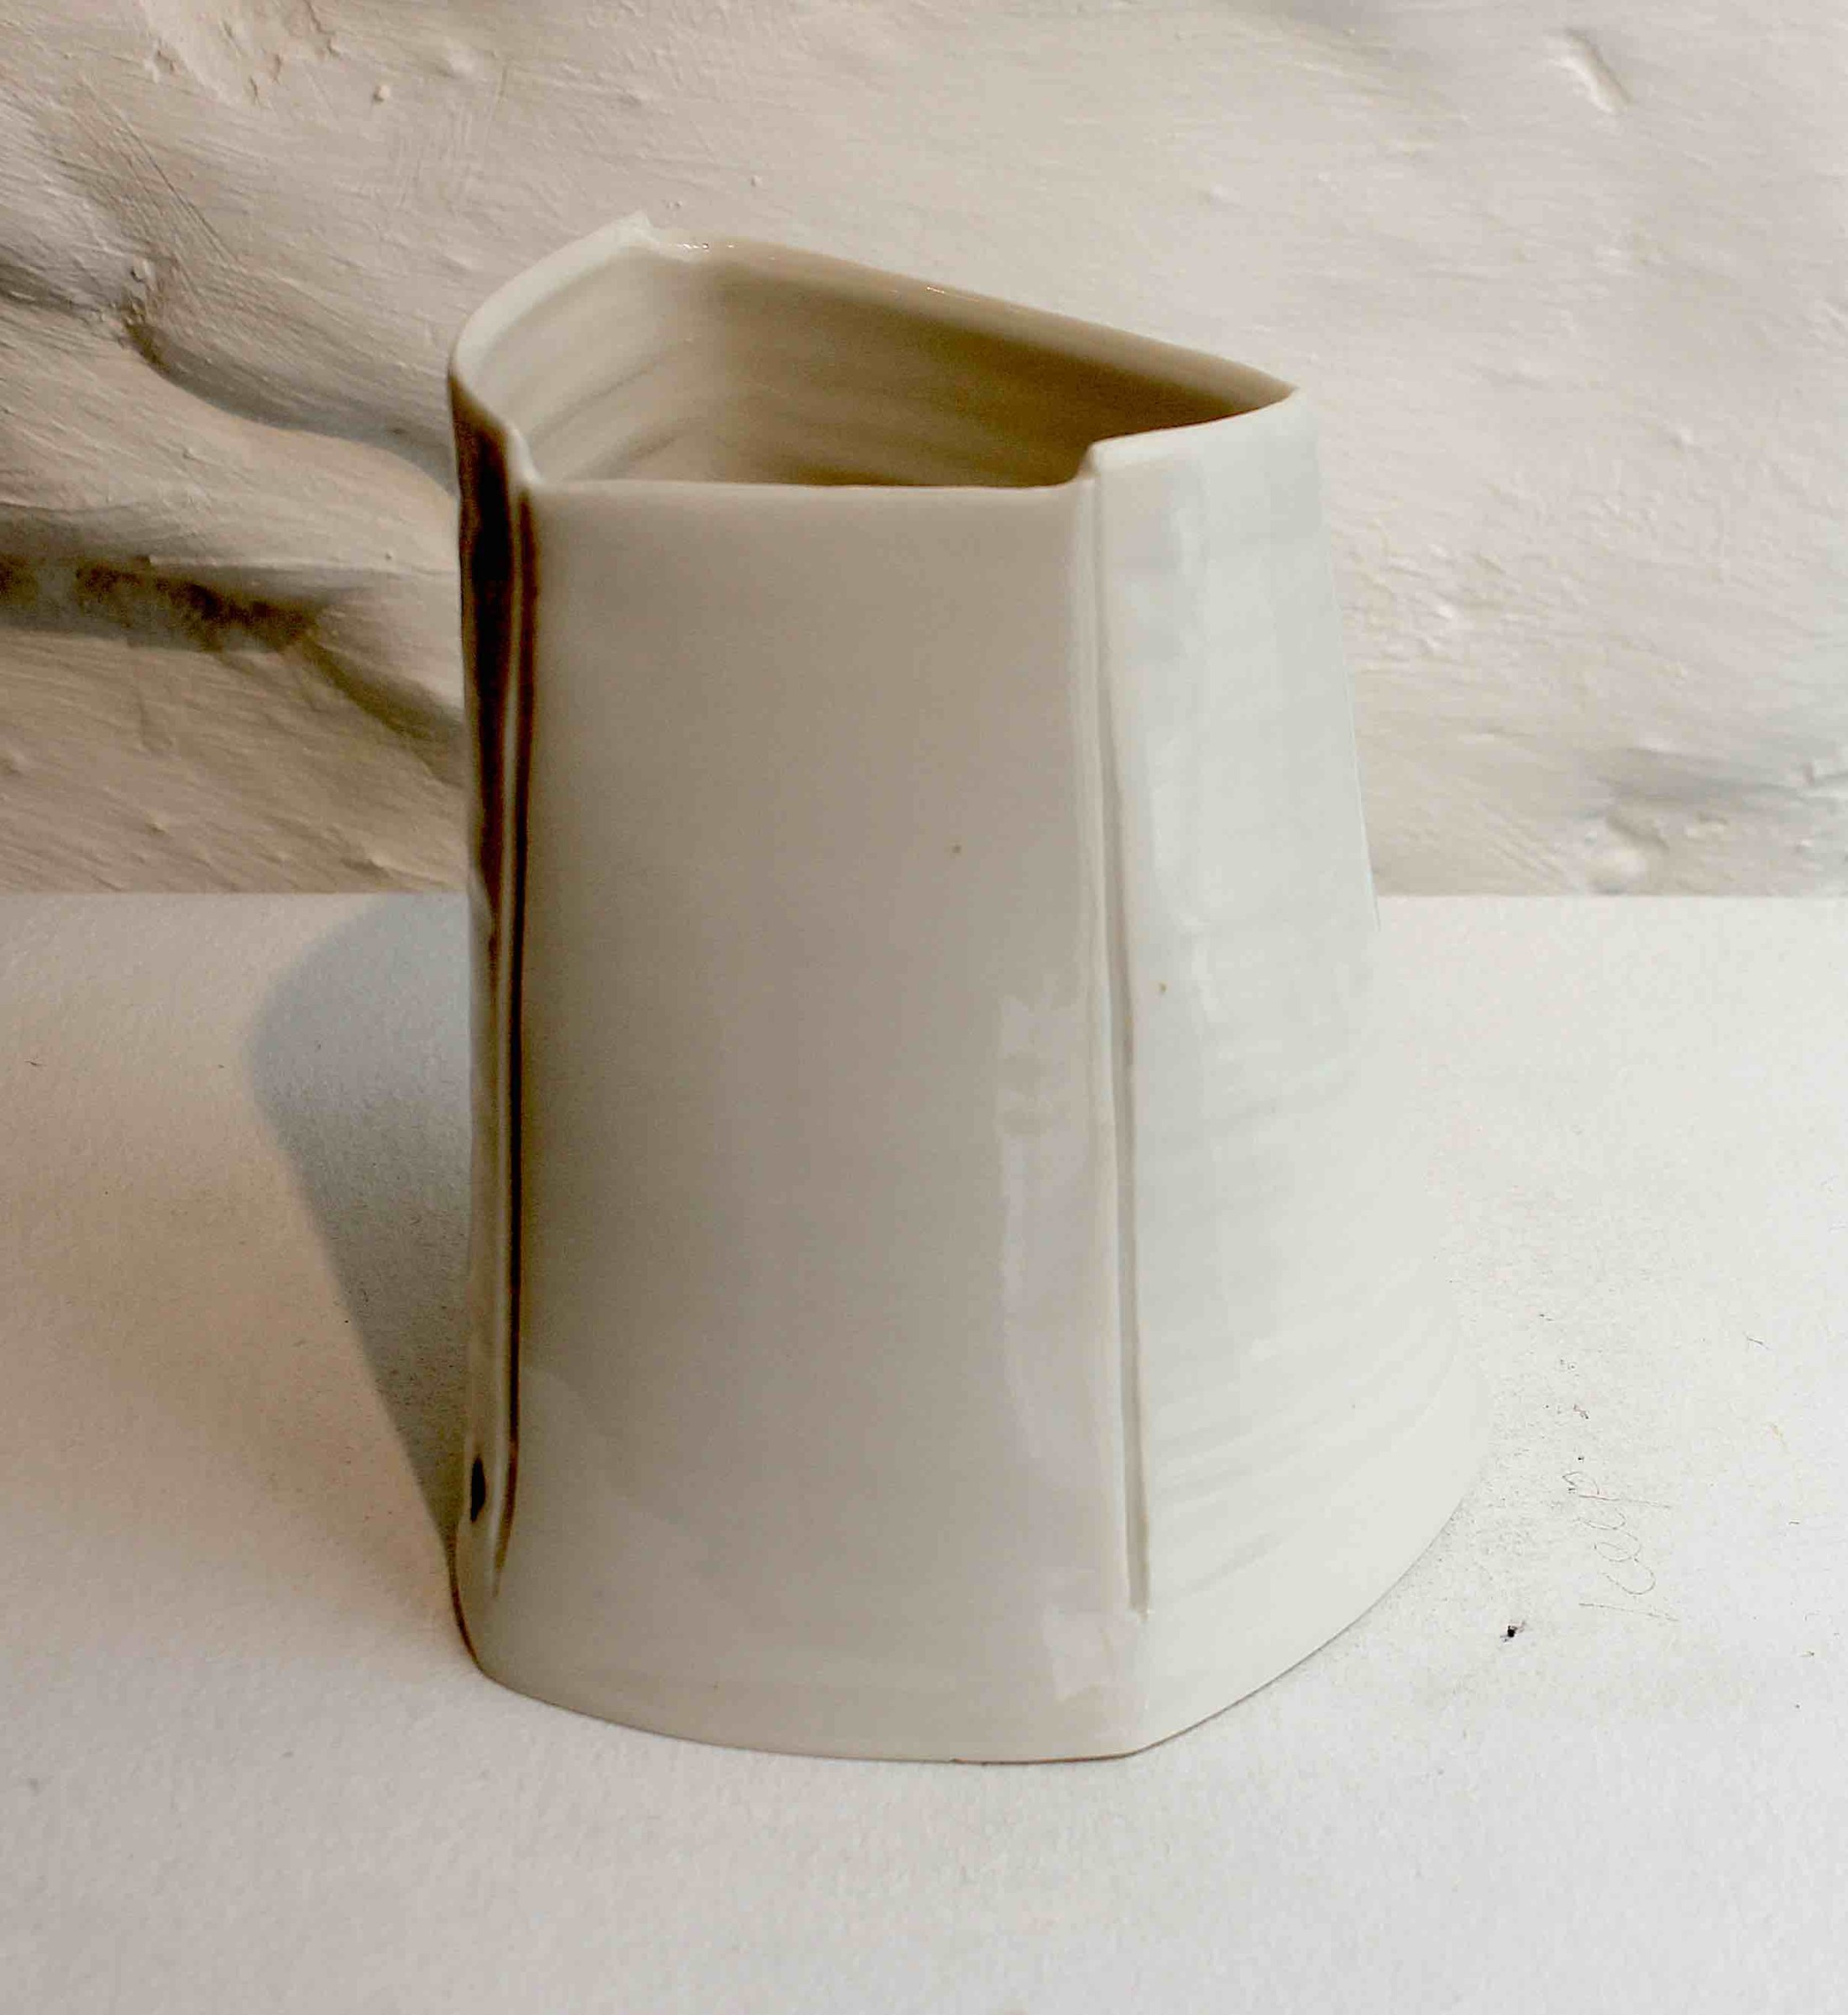 "<span class=""link fancybox-details-link""><a href=""/artists/99-carina-ciscato/works/5763-carina-ciscato-small-white-vase-2018/"">View Detail Page</a></span><div class=""artist""><strong>Carina Ciscato</strong></div> <div class=""title""><em>Small White Vase</em>, 2018</div> <div class=""signed_and_dated"">porcelain</div> <div class=""medium"">porcelain</div> <div class=""dimensions"">12 x 8 cm<br /> 4 3/4 x 3 1/8 inches</div><div class=""price"">£420.00</div><div class=""copyright_line"">OwnArt: £42 x 10 Months, 0% APR</div>"